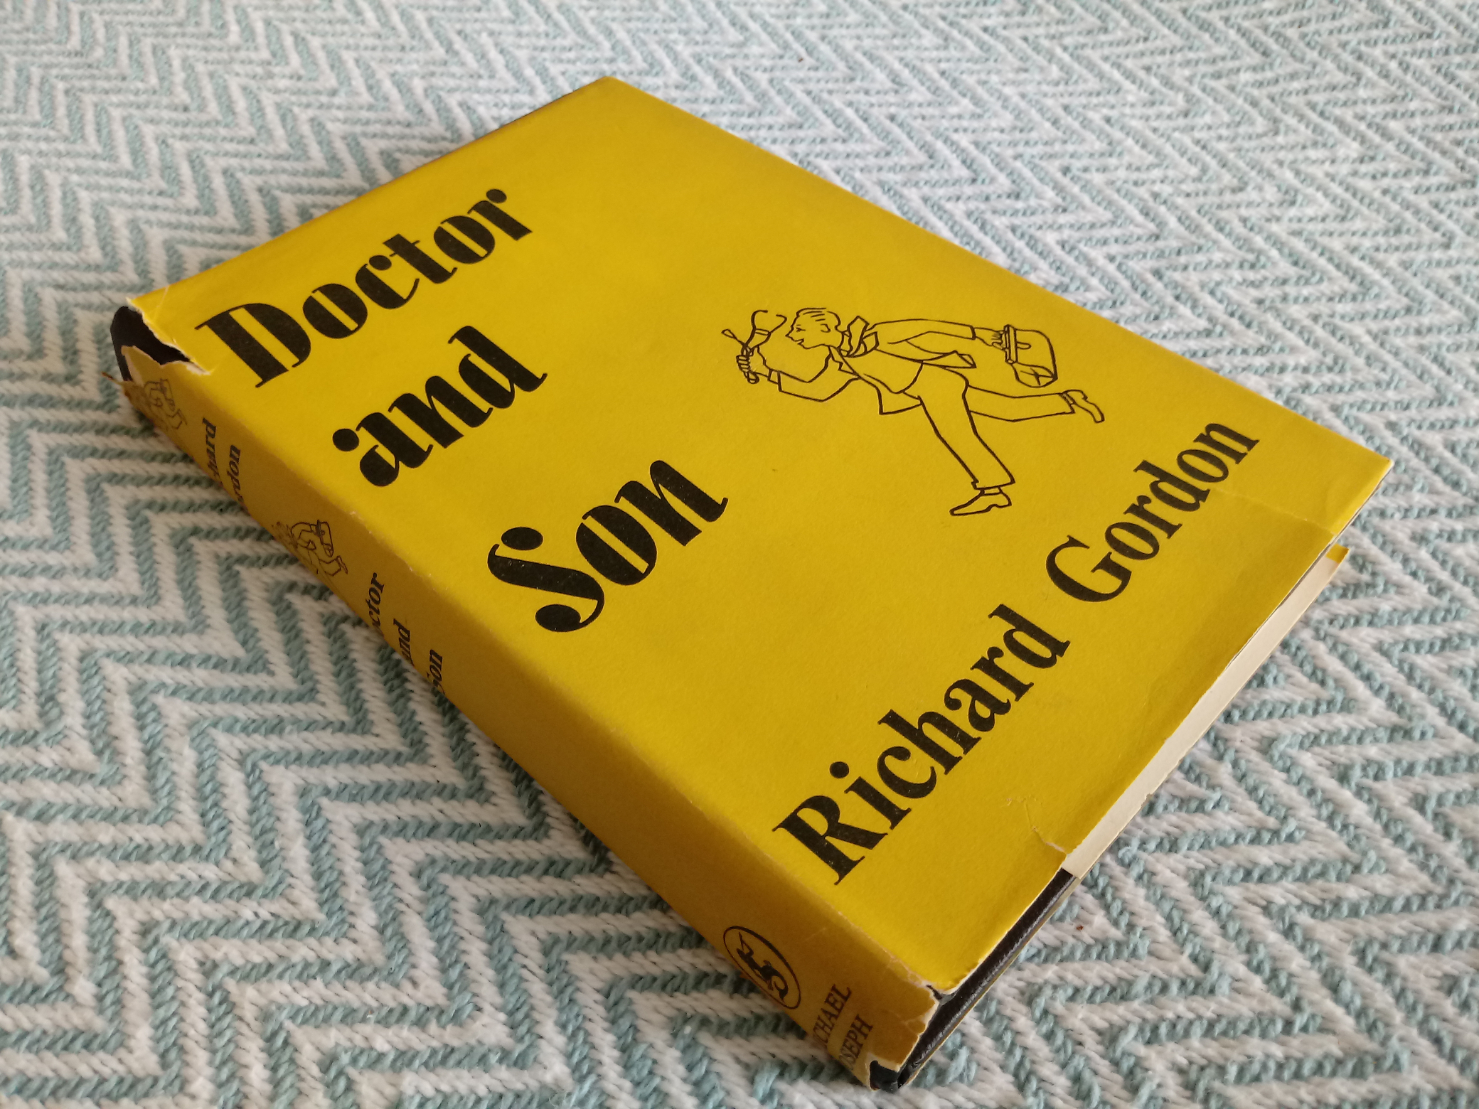 5 x Richard Gordon hardback books Doctor At Sea 219 pages published 1954 in good condition has dings